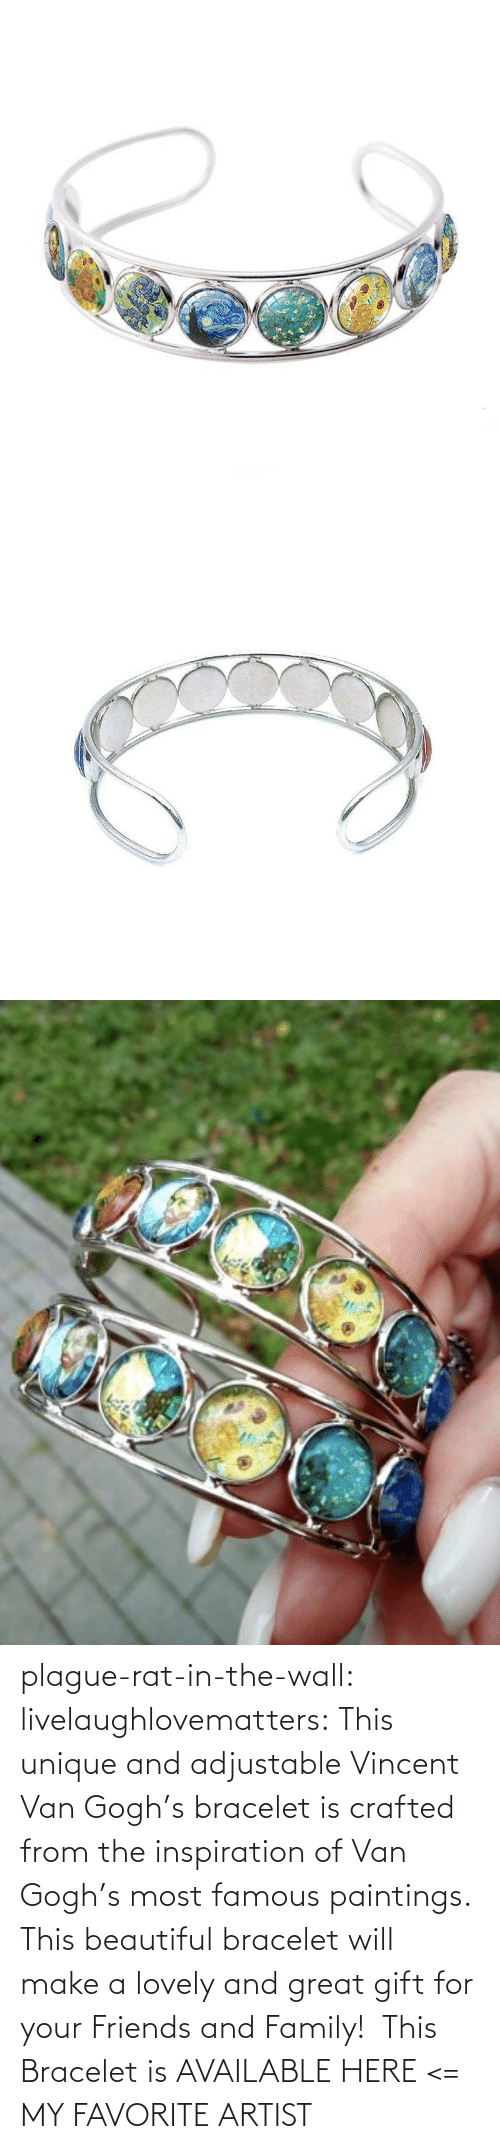 my favorite: plague-rat-in-the-wall:  livelaughlovematters: This unique and adjustable Vincent Van Gogh's bracelet is crafted from the inspiration of Van Gogh's most famous paintings. This beautiful bracelet will make a lovely and great gift for your Friends and Family!  This Bracelet is AVAILABLE HERE <=  MY FAVORITE ARTIST